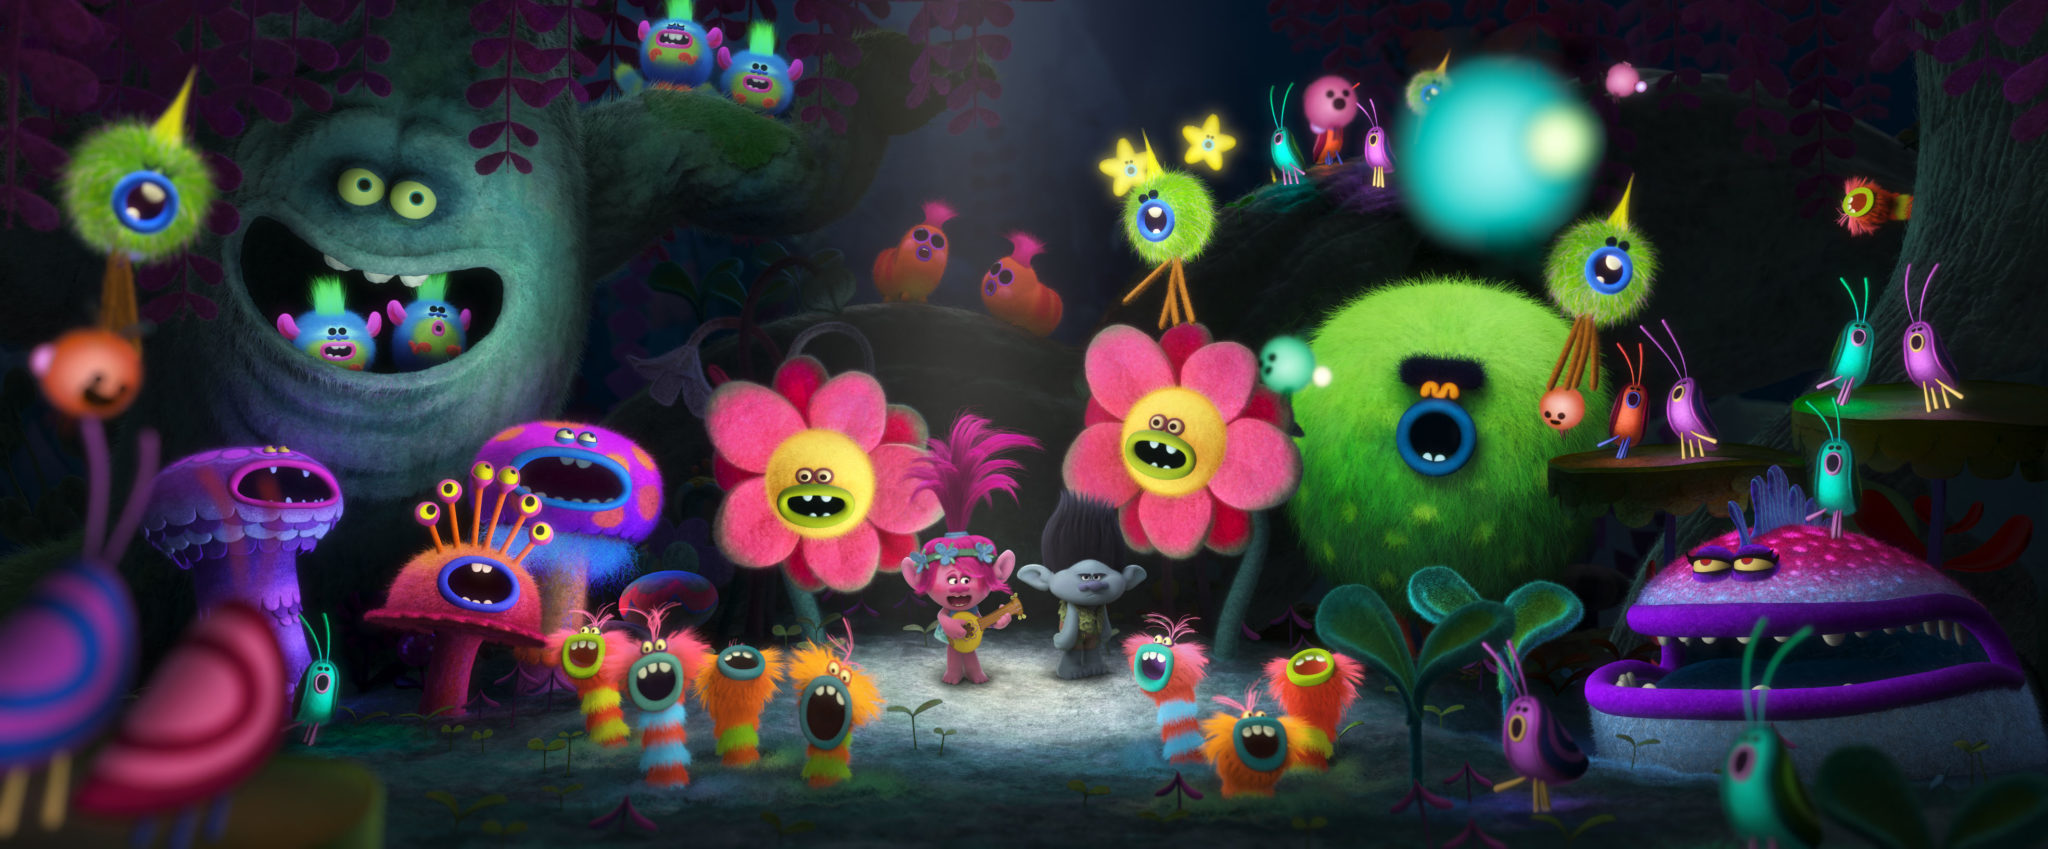 Two New Stills From DreamWorks' 'Trolls' Released Online ... Justin Timberlake Can't Stop The Feeling